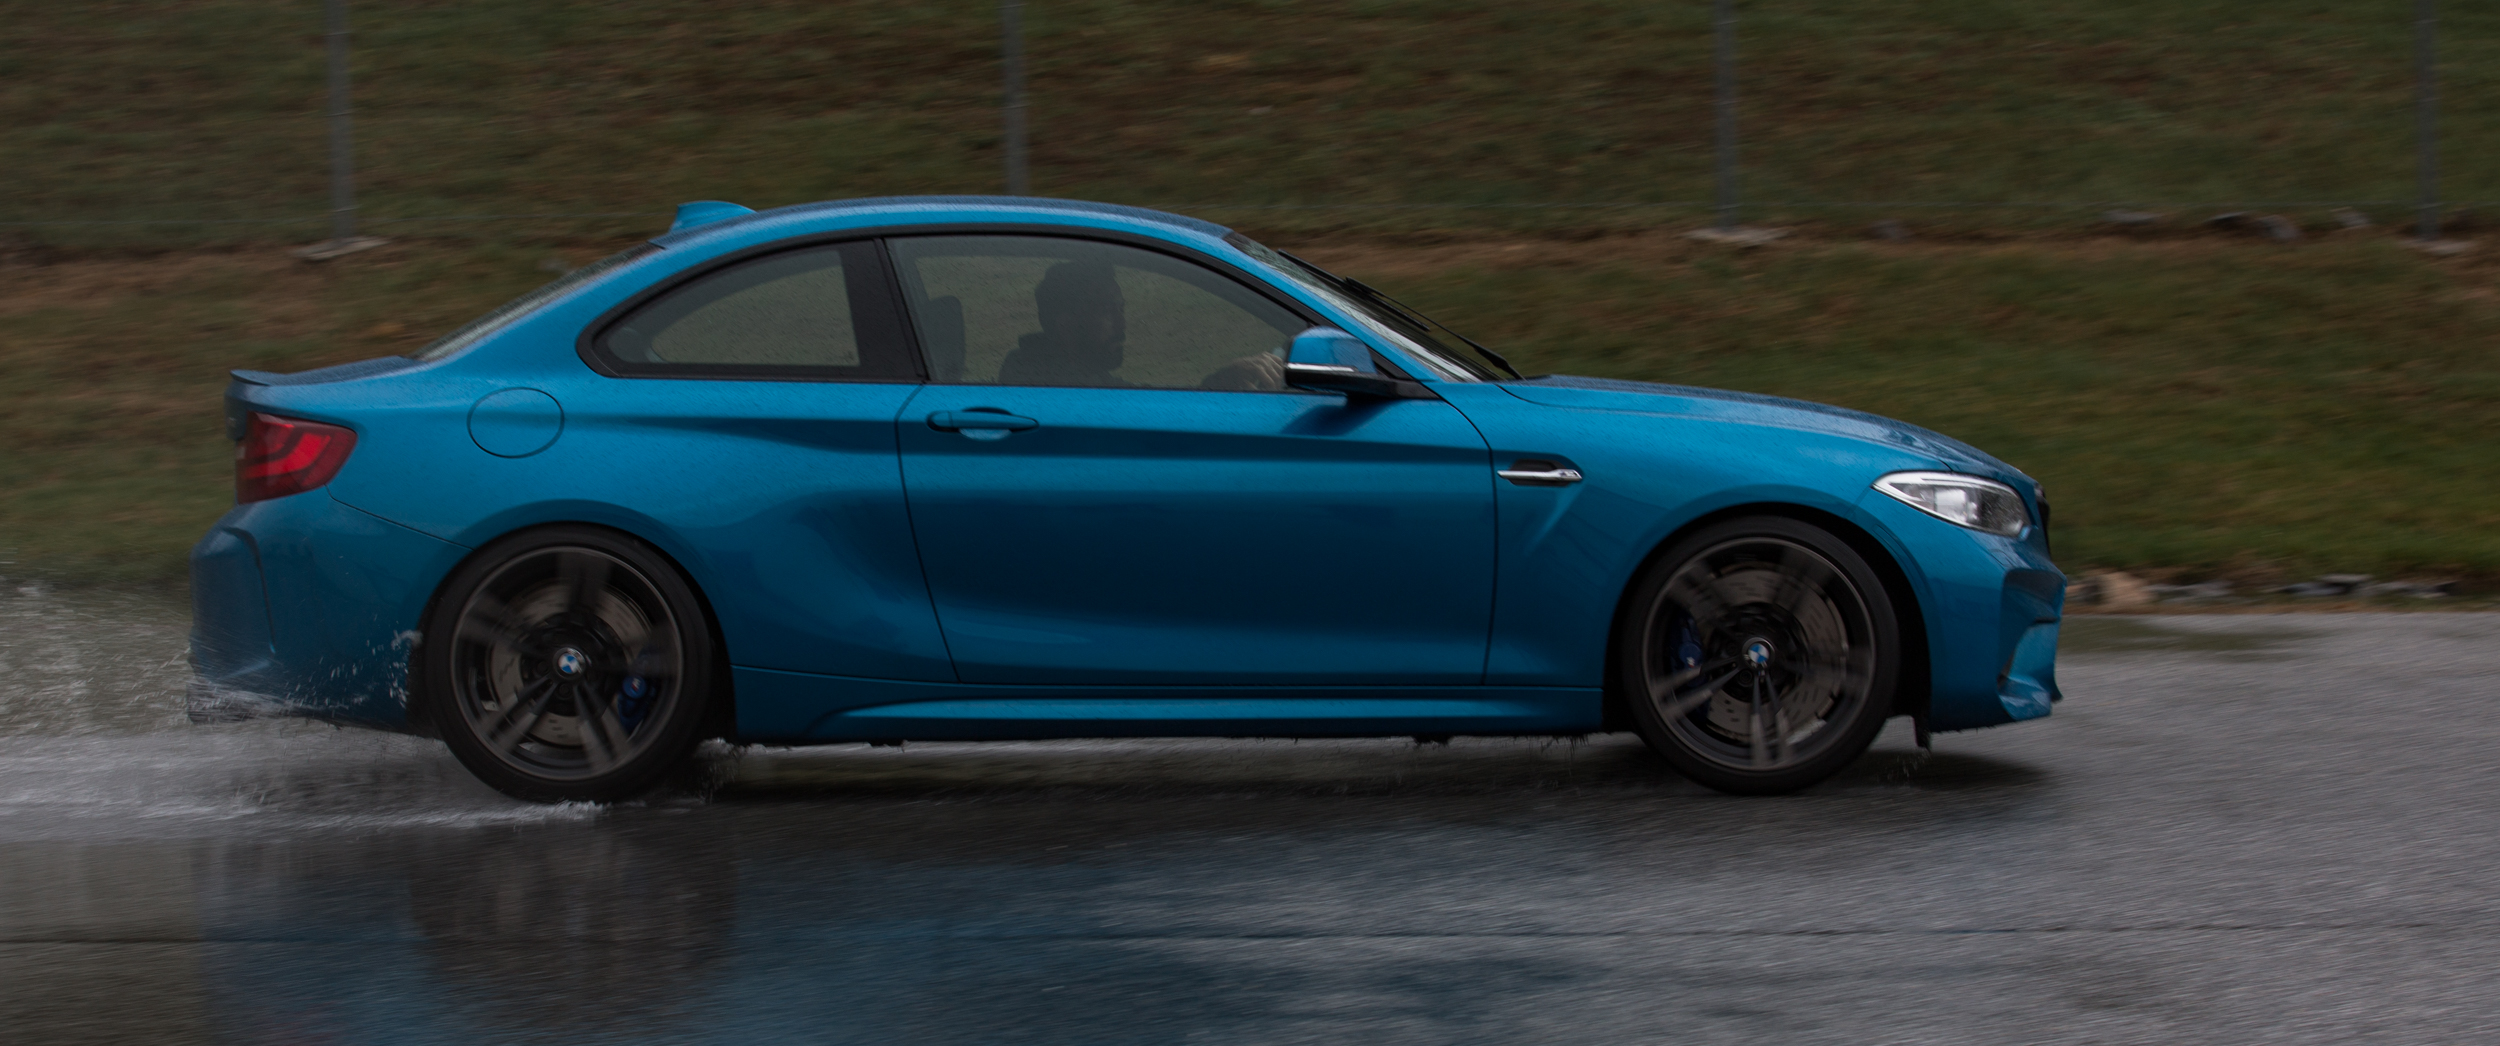 The owner was more than happy to show us the performance capabilities of BMW's newest M-Powered model.